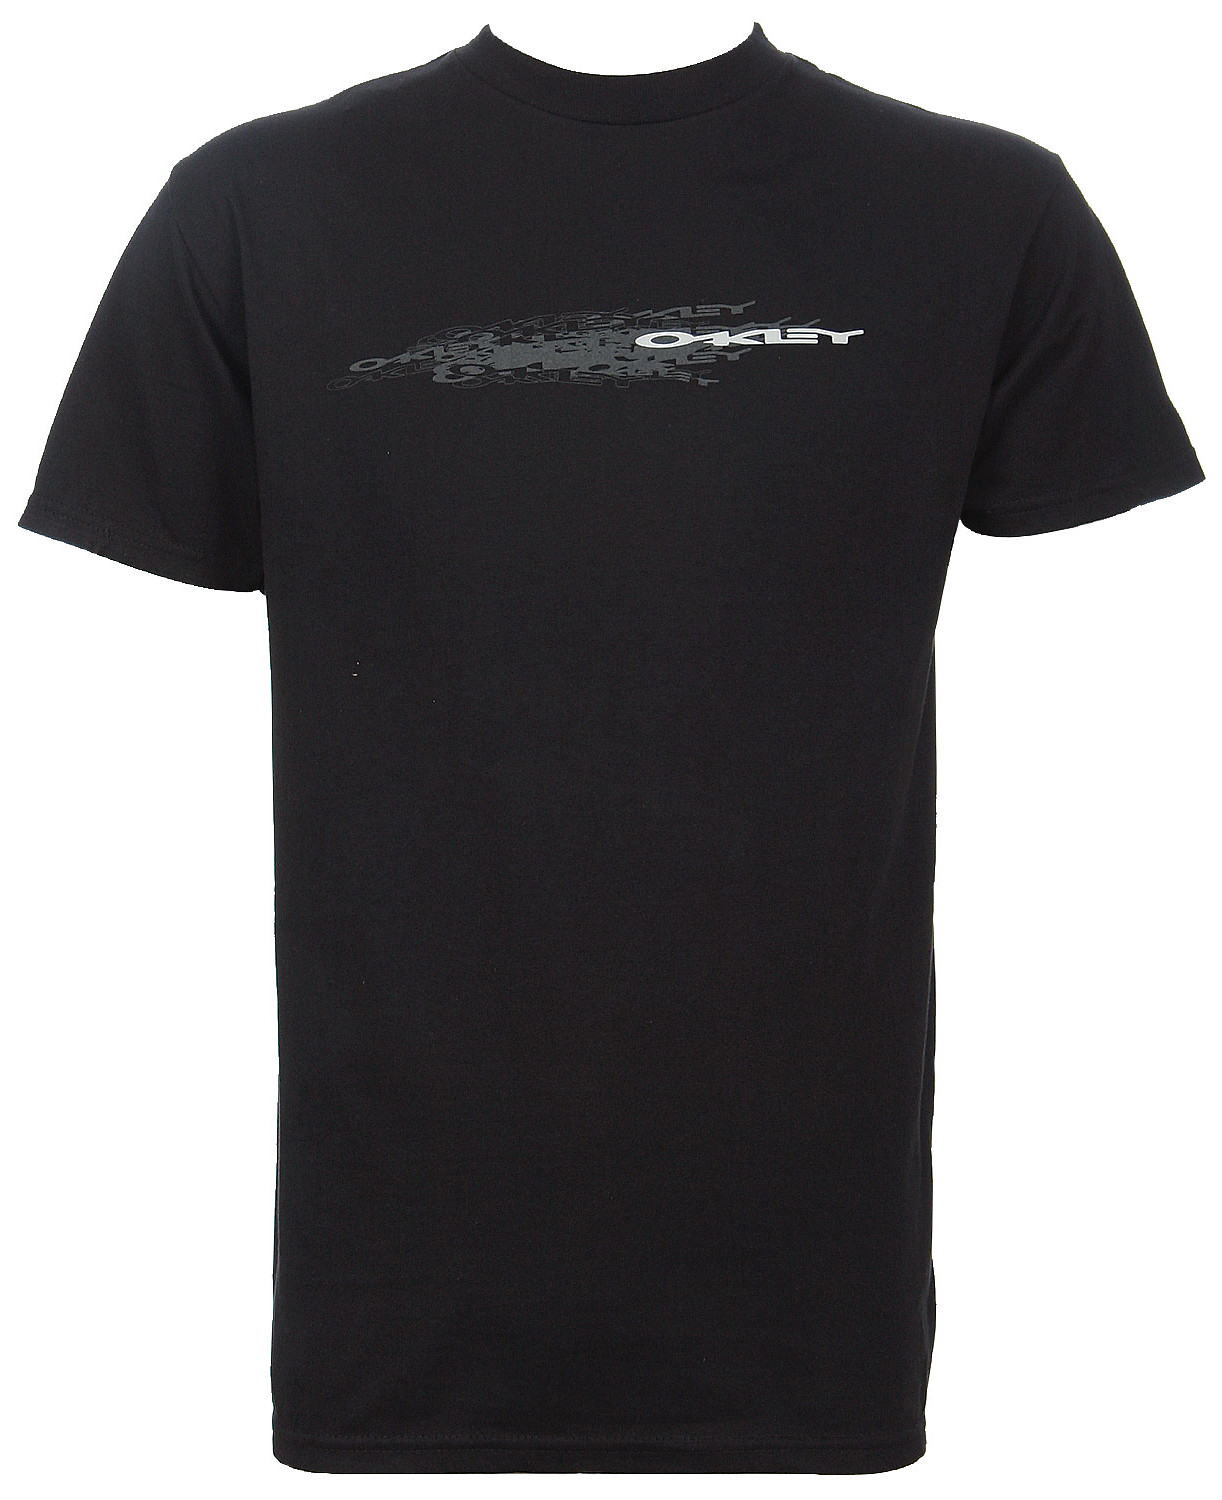 Oakley Repeated Transaction T-Shirt Black  oak-repeated-bk-07.jpg